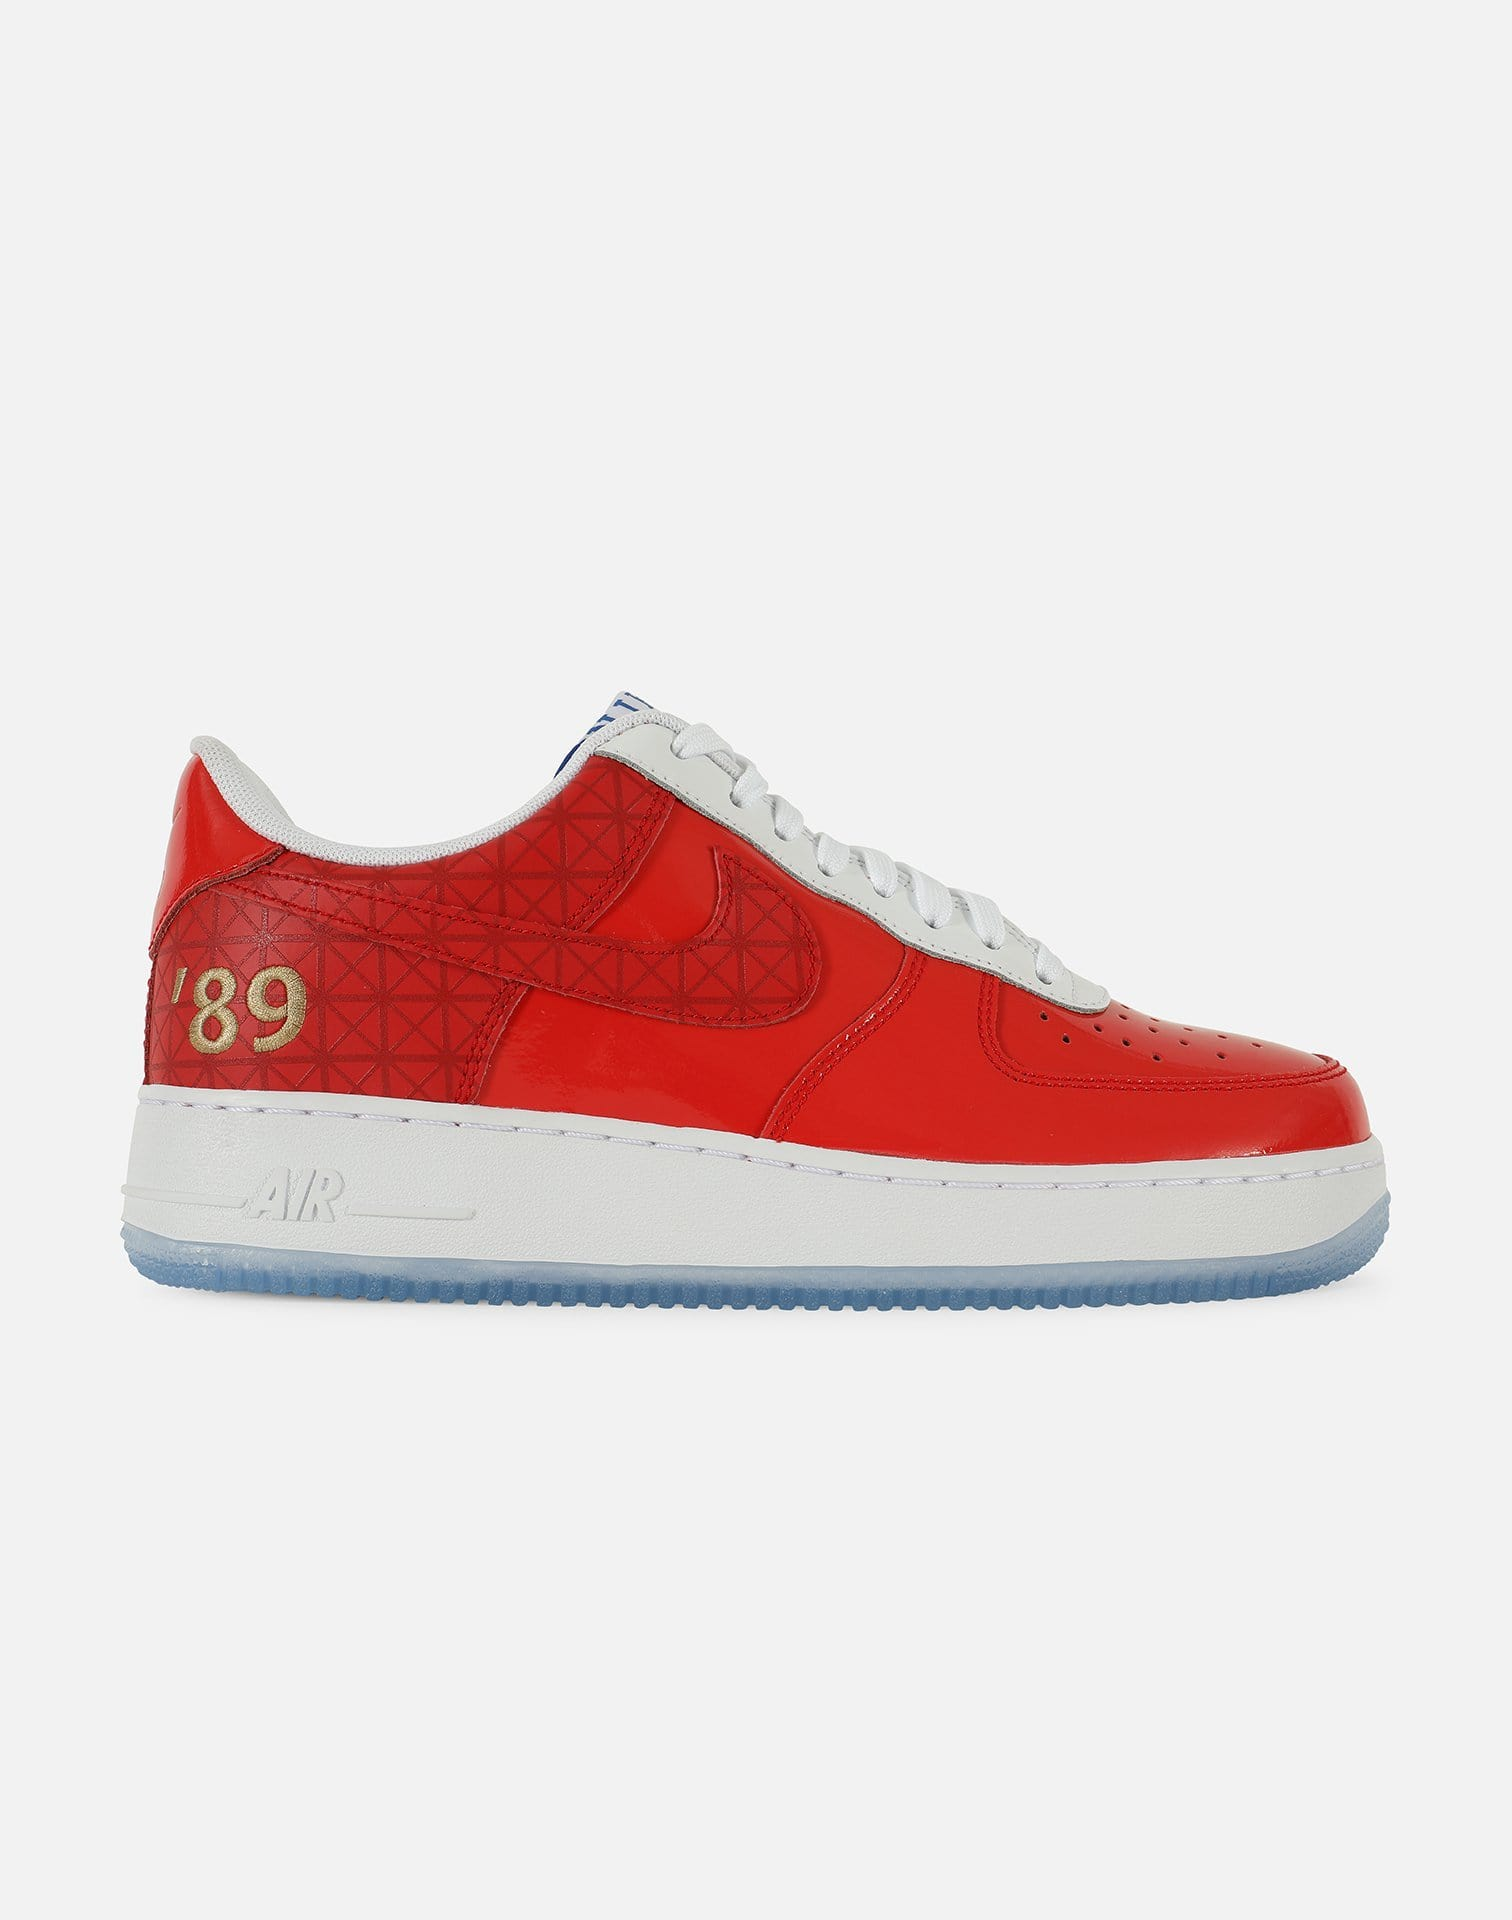 Nike Me's Air Force 1 '07 Low LV8 '1989 NBA Finals'